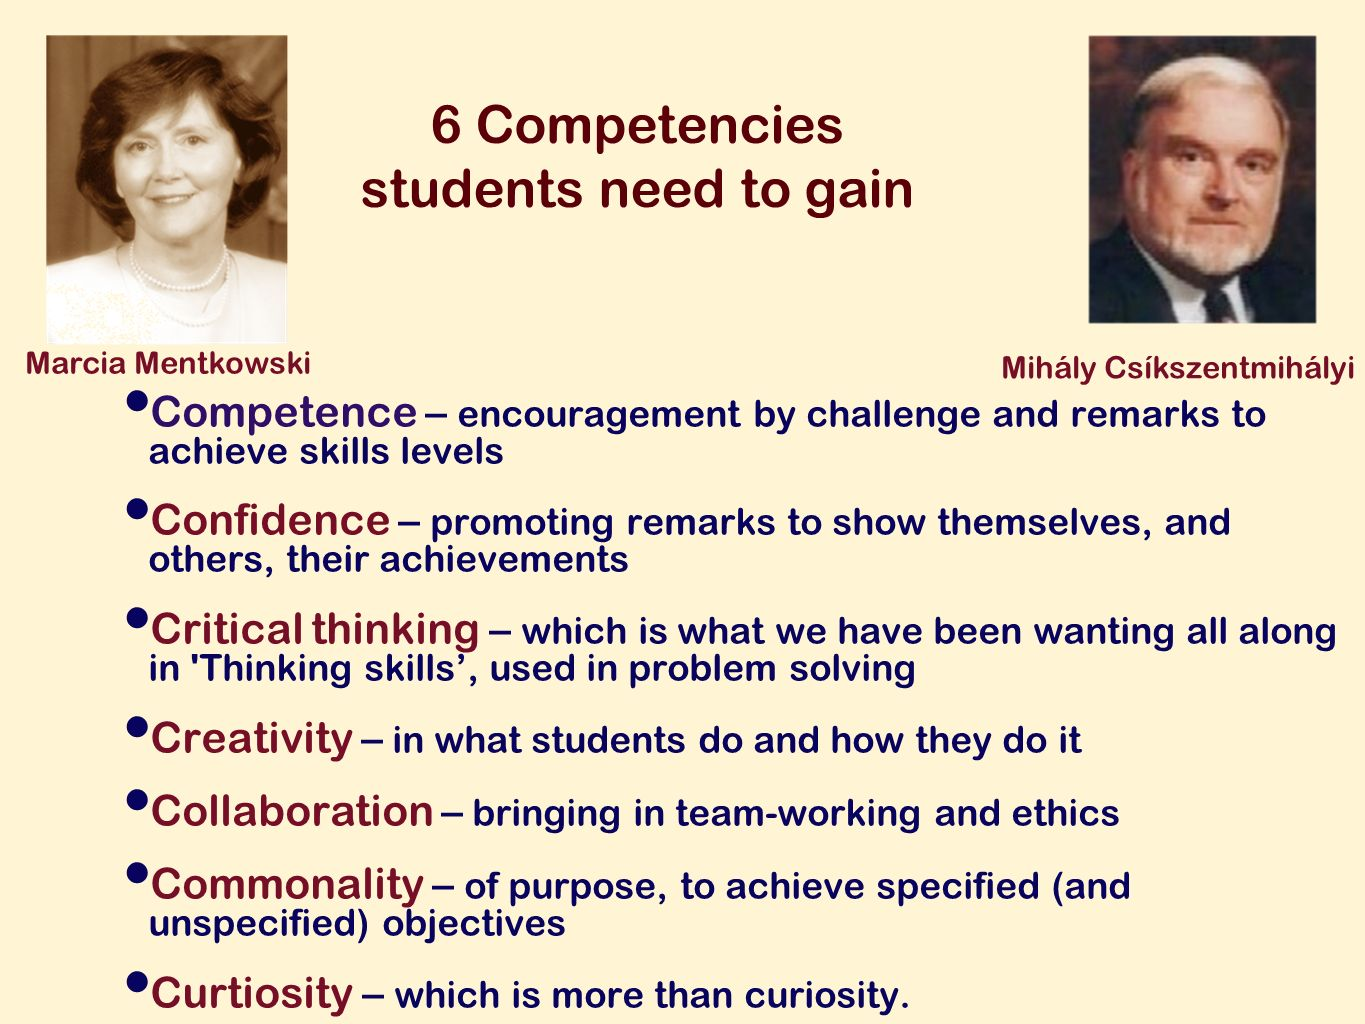 6 Competencies students need to gain Competence – encouragement by challenge and remarks to achieve skills levels Confidence – promoting remarks to show themselves, and others, their achievements Critical thinking – which is what we have been wanting all along in Thinking skills, used in problem solving Creativity – in what students do and how they do it Collaboration – bringing in team-working and ethics Commonality – of purpose, to achieve specified (and unspecified) objectives Curtiosity – which is more than curiosity.